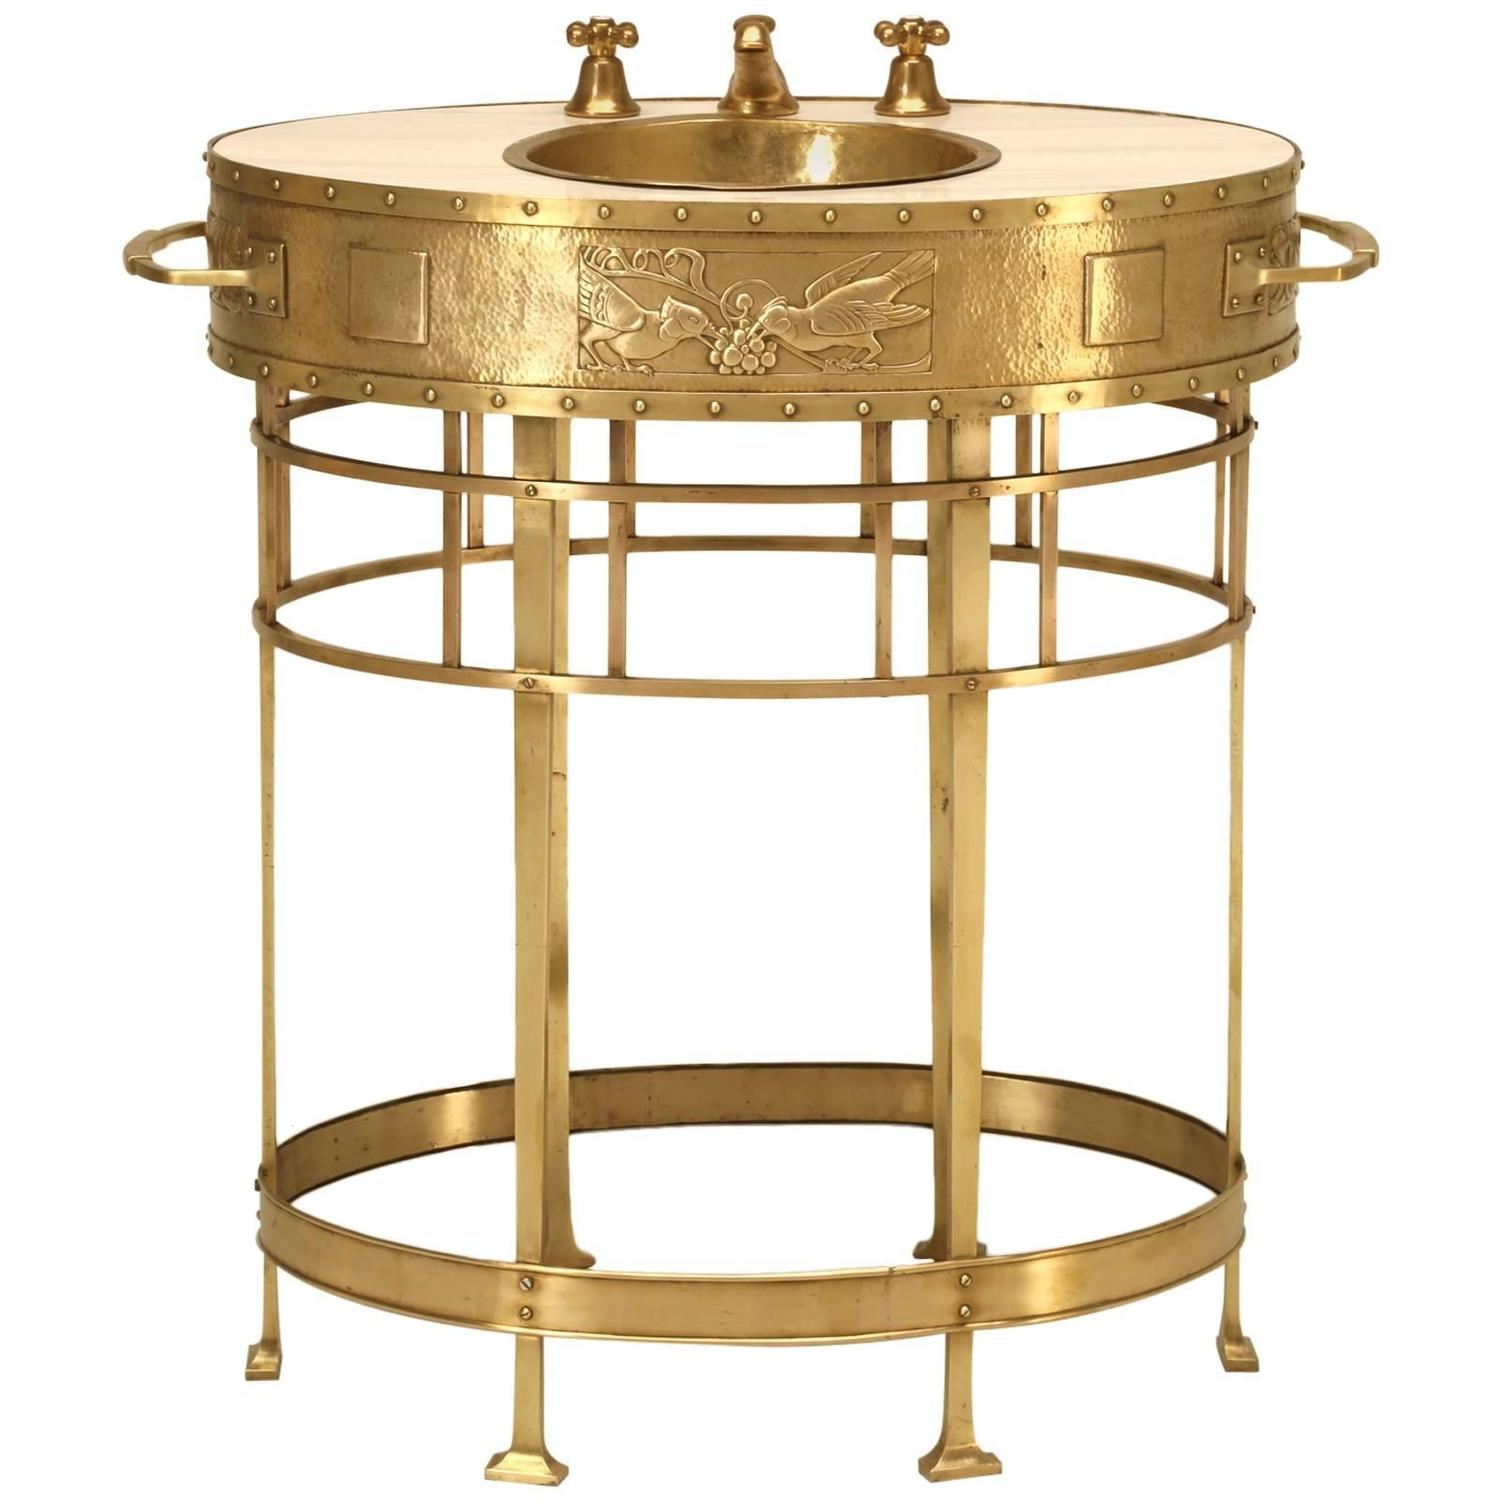 French Bathroom Vanity or Jardiniere circa 1900 at 1stdibs